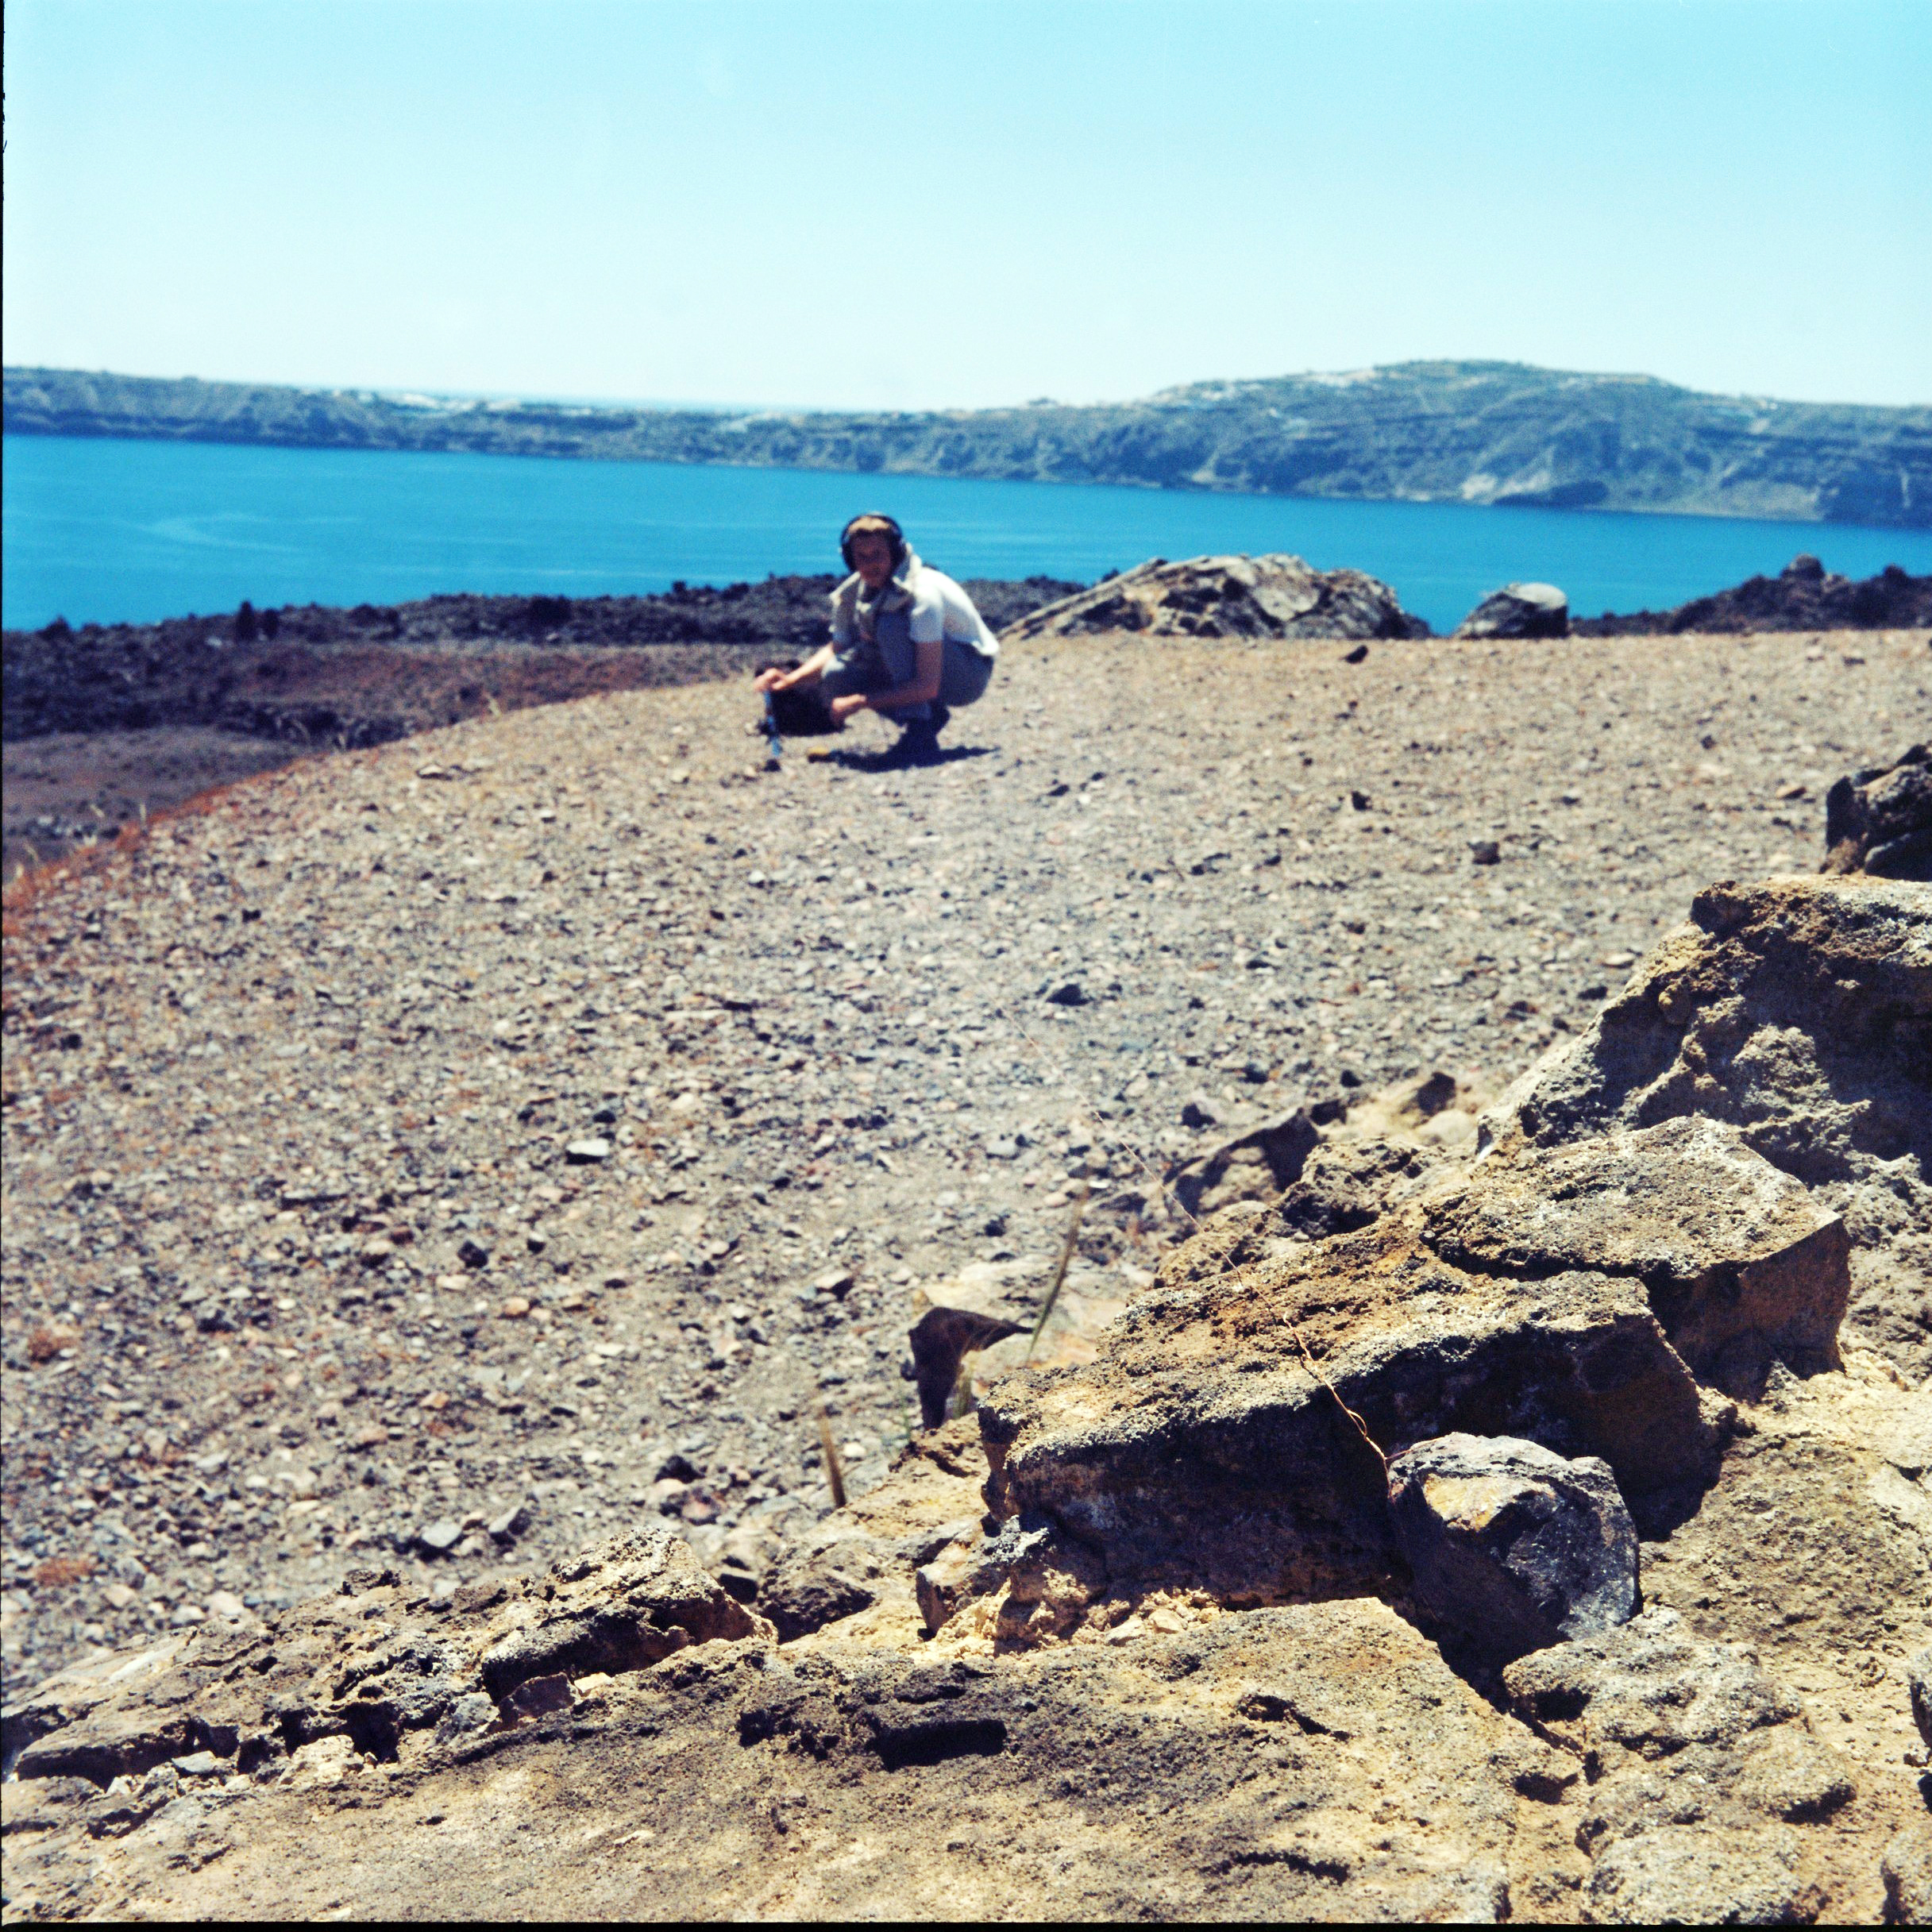 Tamm recording aeolian winds on Nea Kameni (Santorini's volcanic crater) for Tympanic Tether; photograph by Hermione Spriggs, 2015